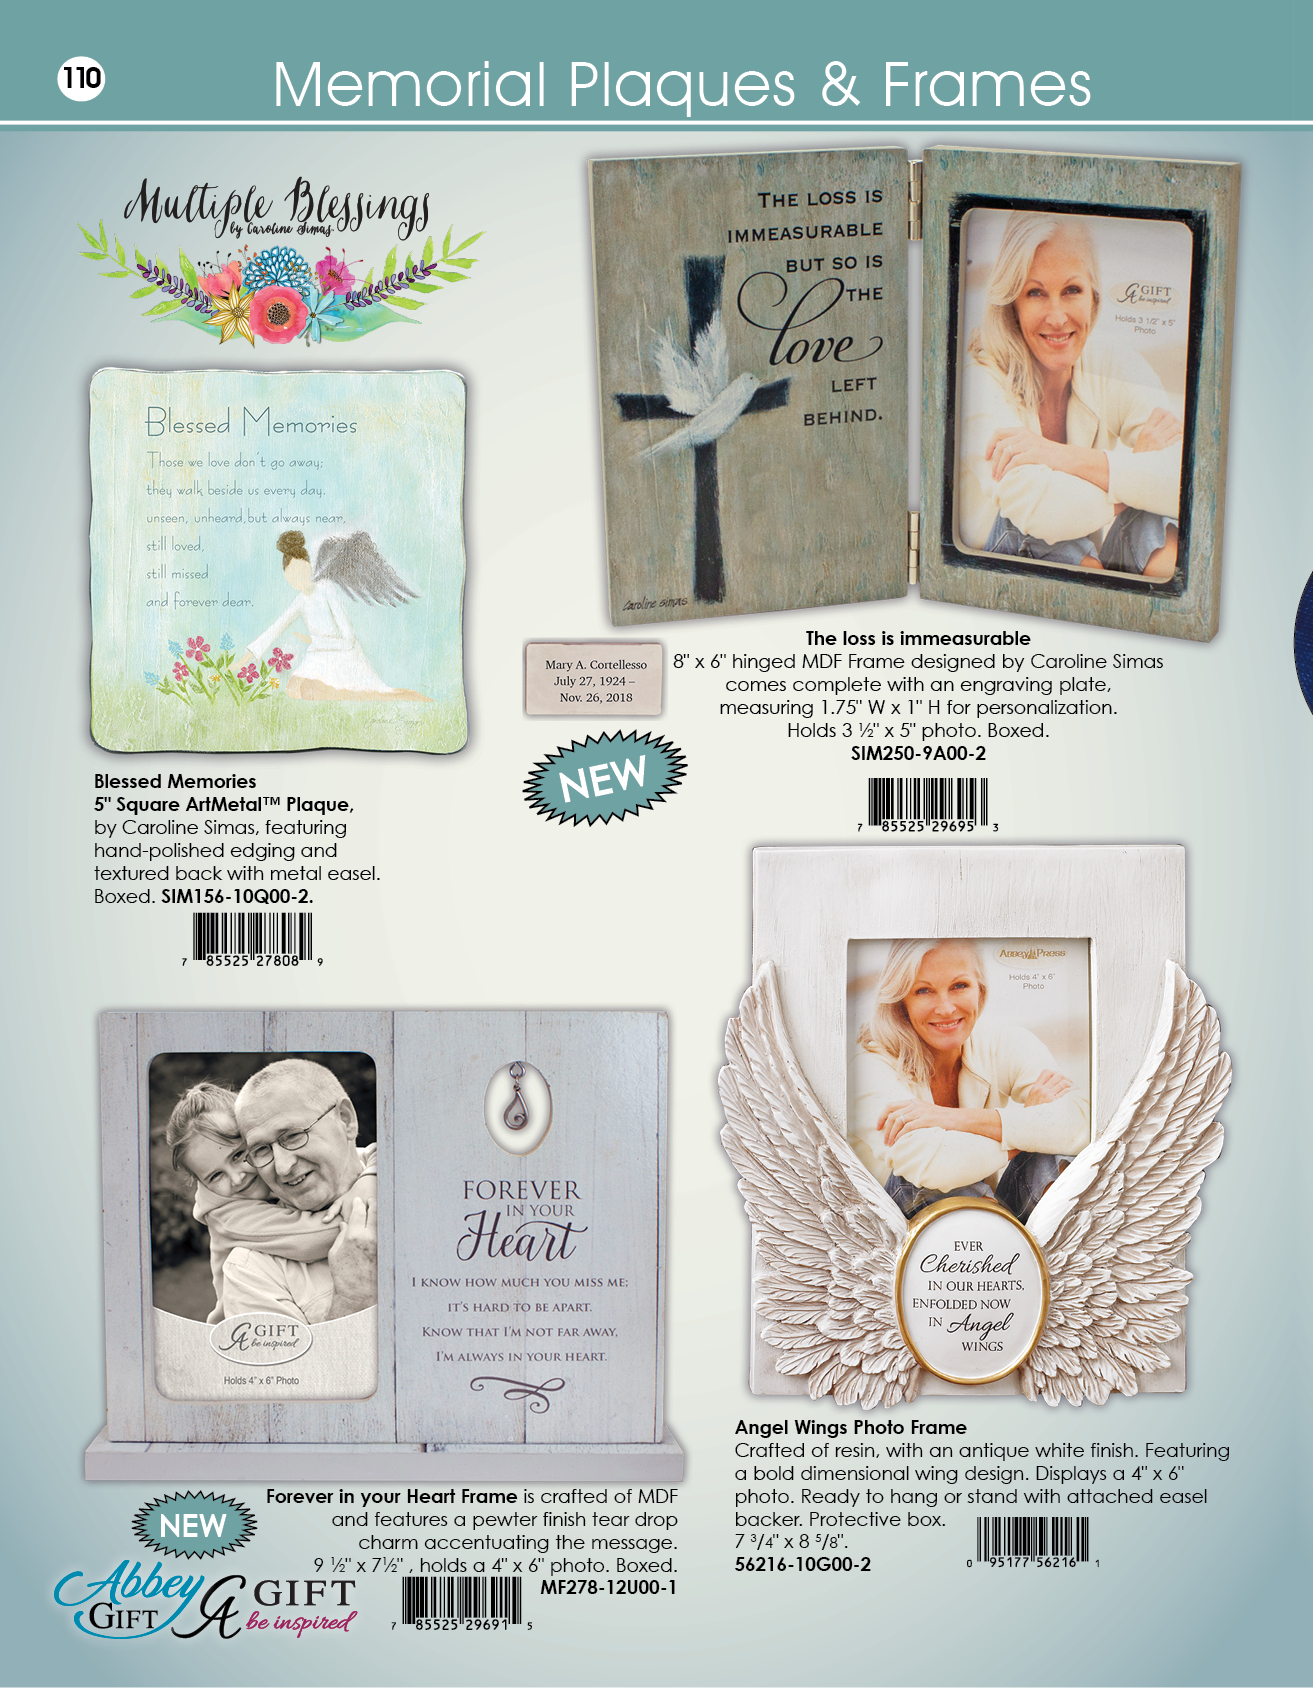 CA & Abbey Gift Pgs110